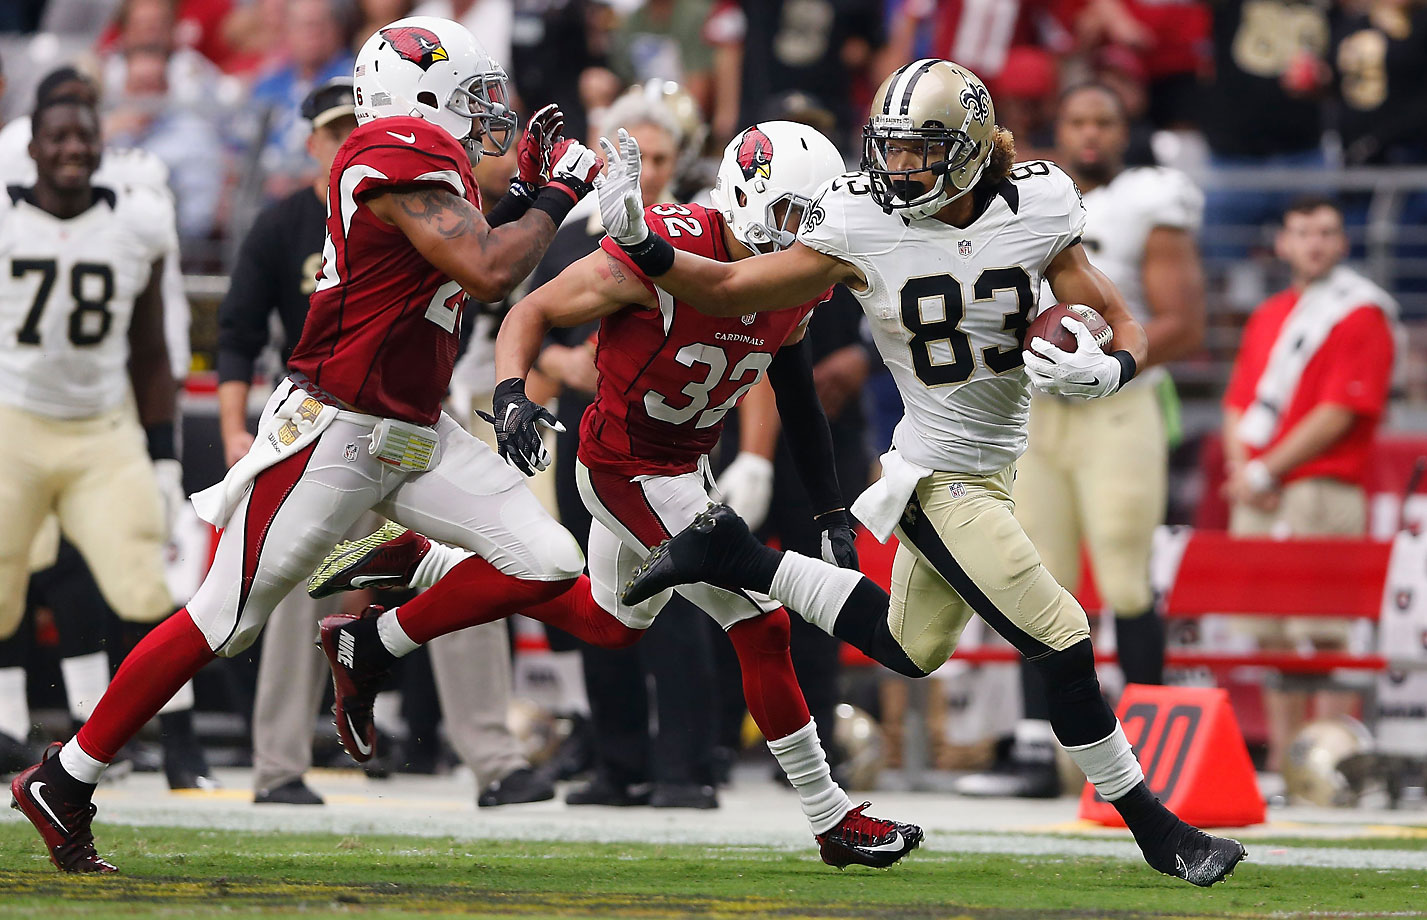 Wide receiver Willie Snead of the New Orleans Saints stiff arms free safety Rashad Johnson of the Arizona Cardinals.